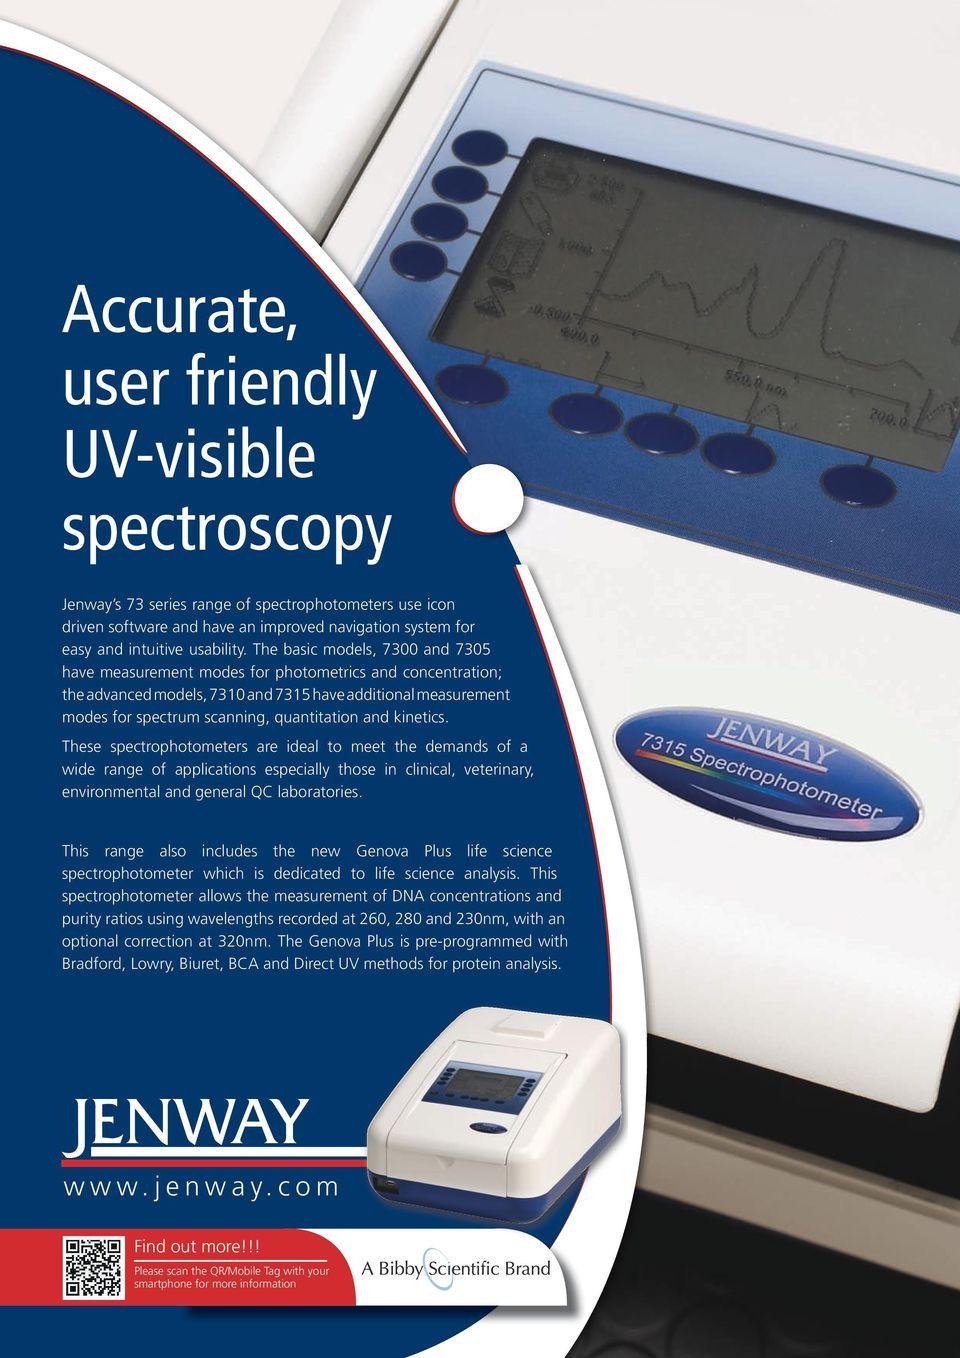 kinetics. These spectrophotometers are ideal to meet the demands of a wide range of applications especially those in clinical, veterinary, environmental and general QC laboratories.